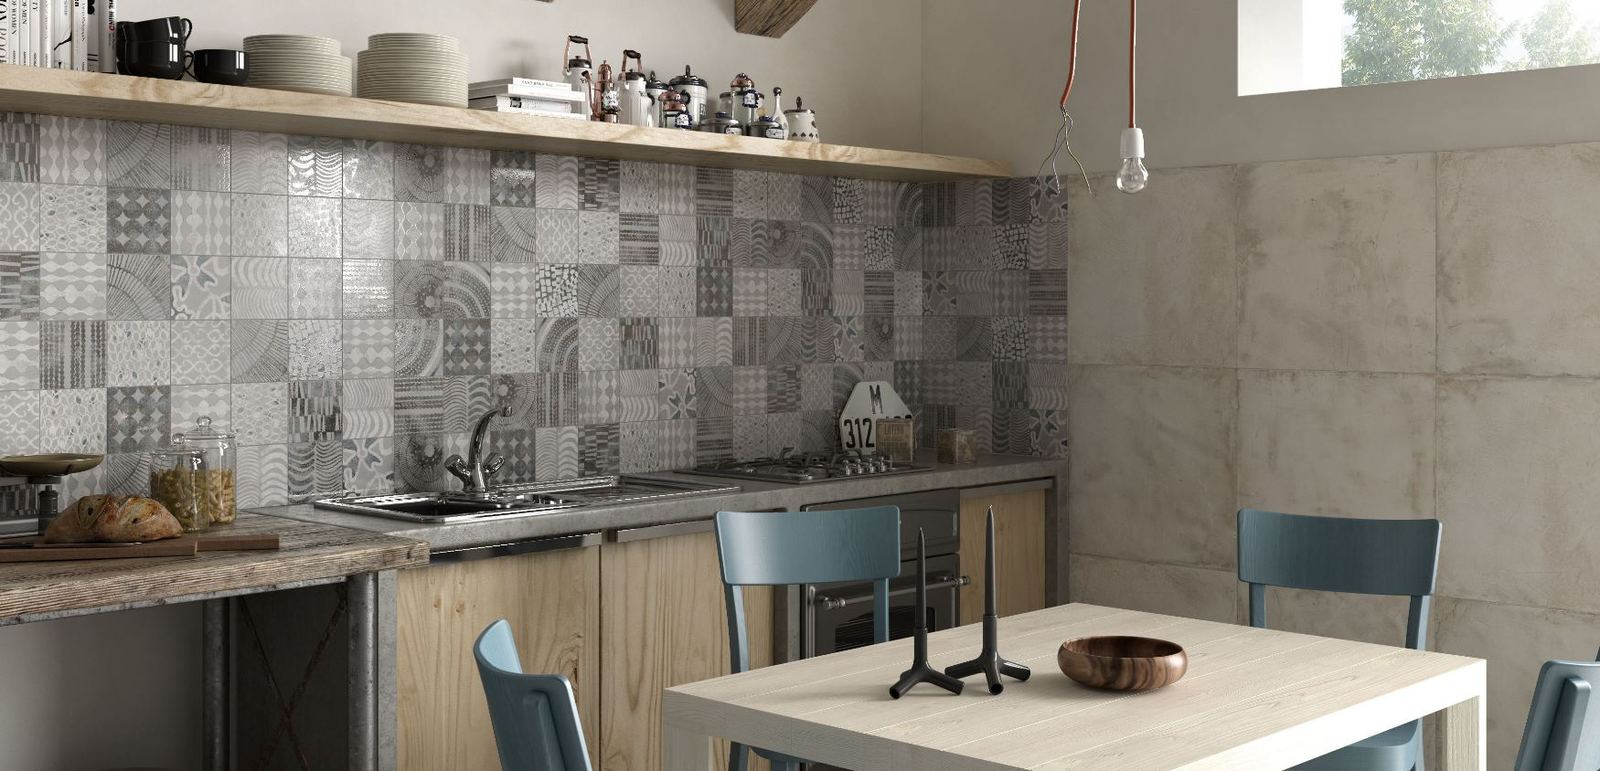 Bon View In Gallery Kitchen Backsplash In Grey  Monochrome Patchwork Patterns Ricchetti.